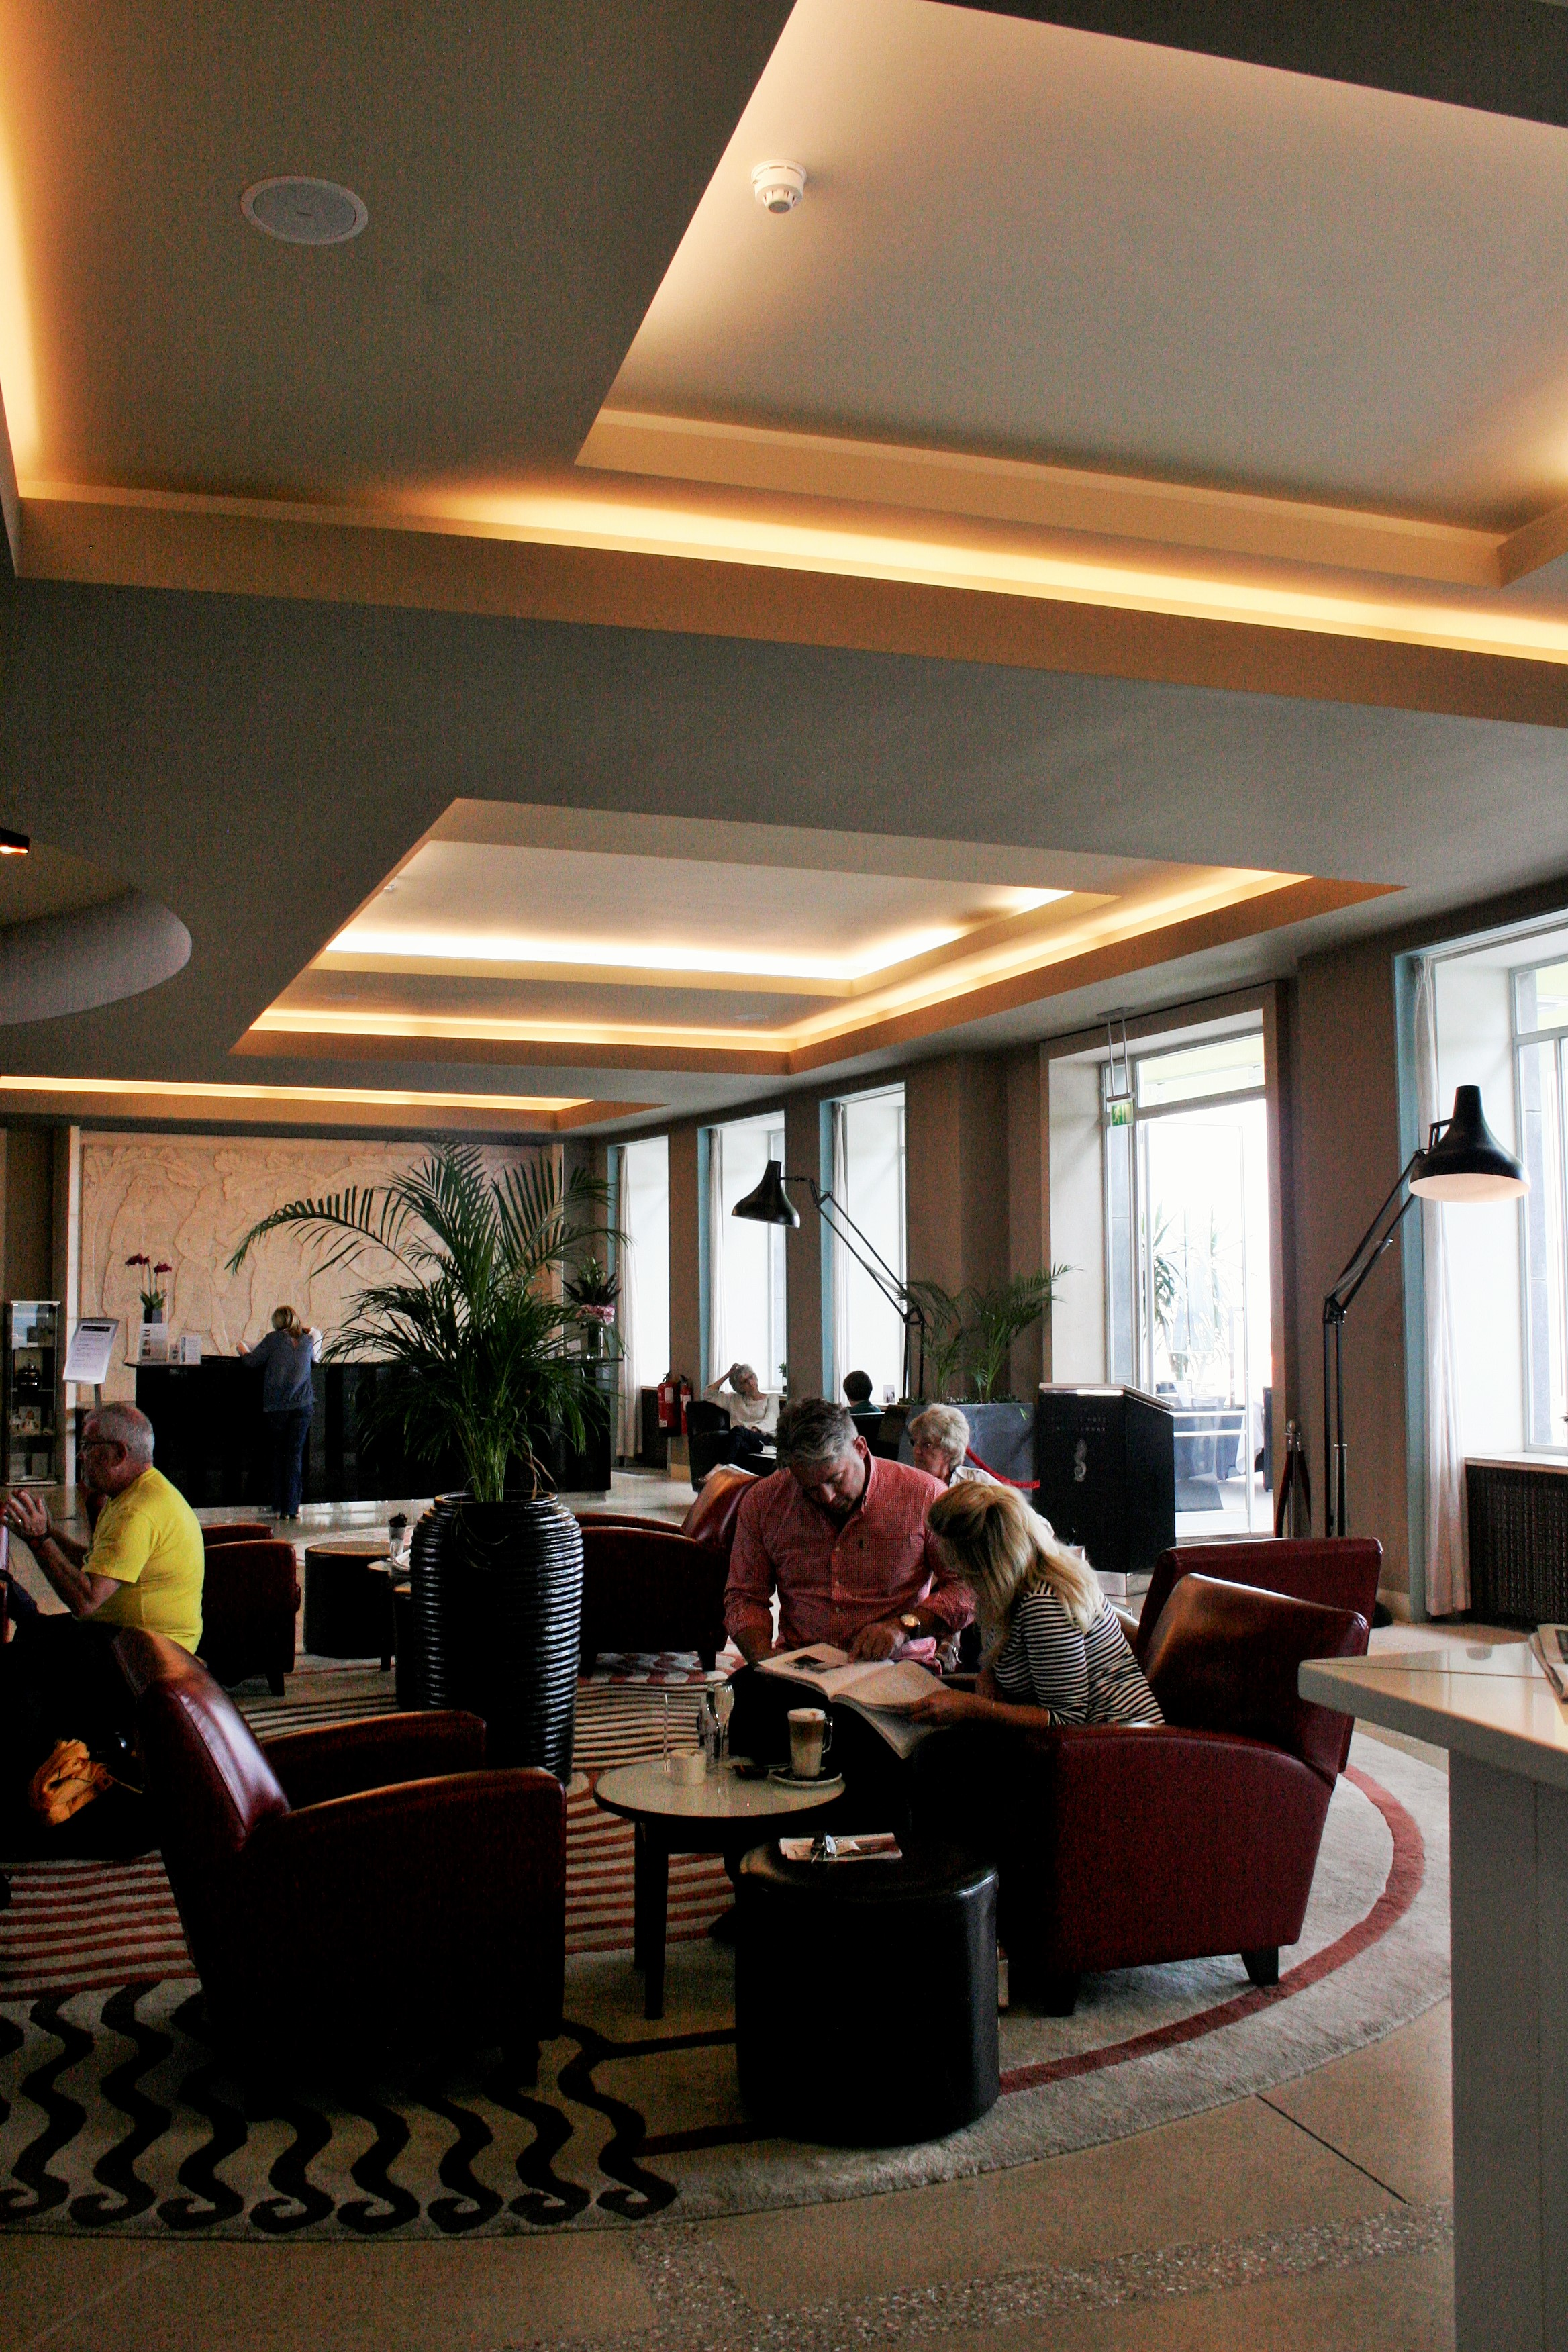 Foyer Im Hotel : An overnight visit to the midland hotel morecambe